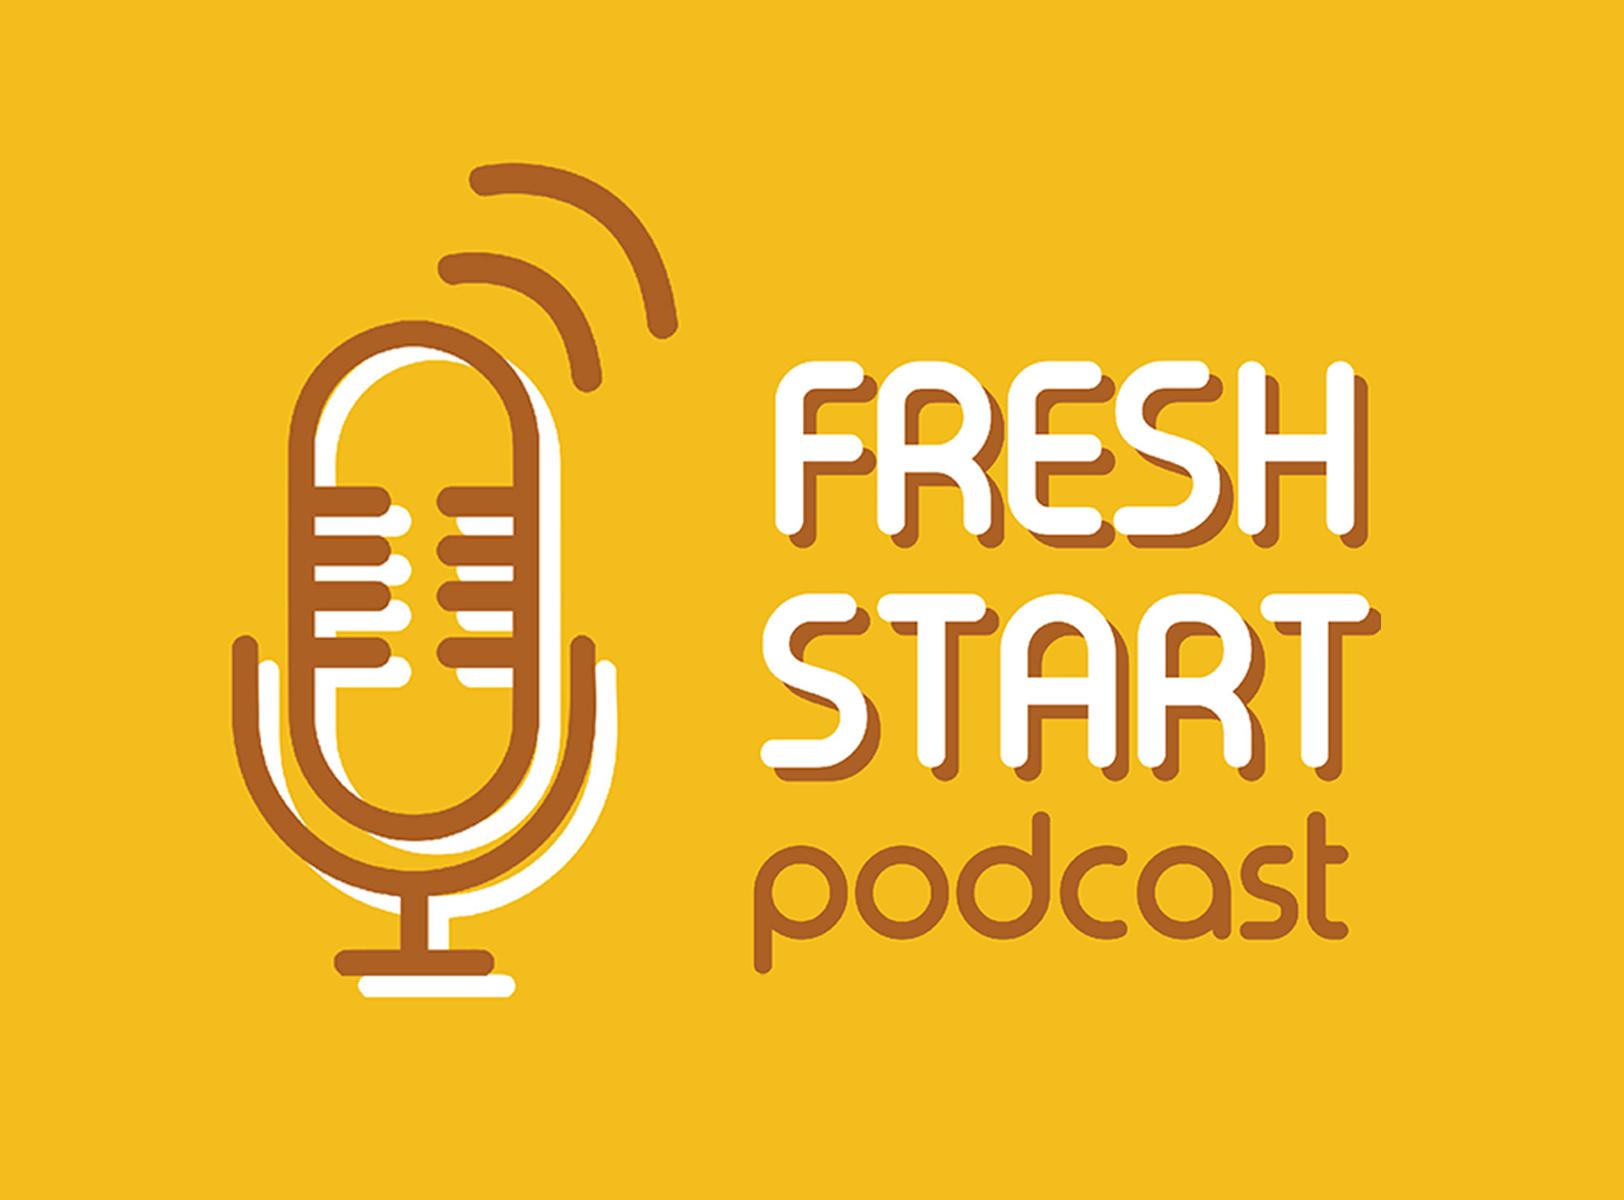 Fresh Start: Podcast News (2/13/2019 Wed.)